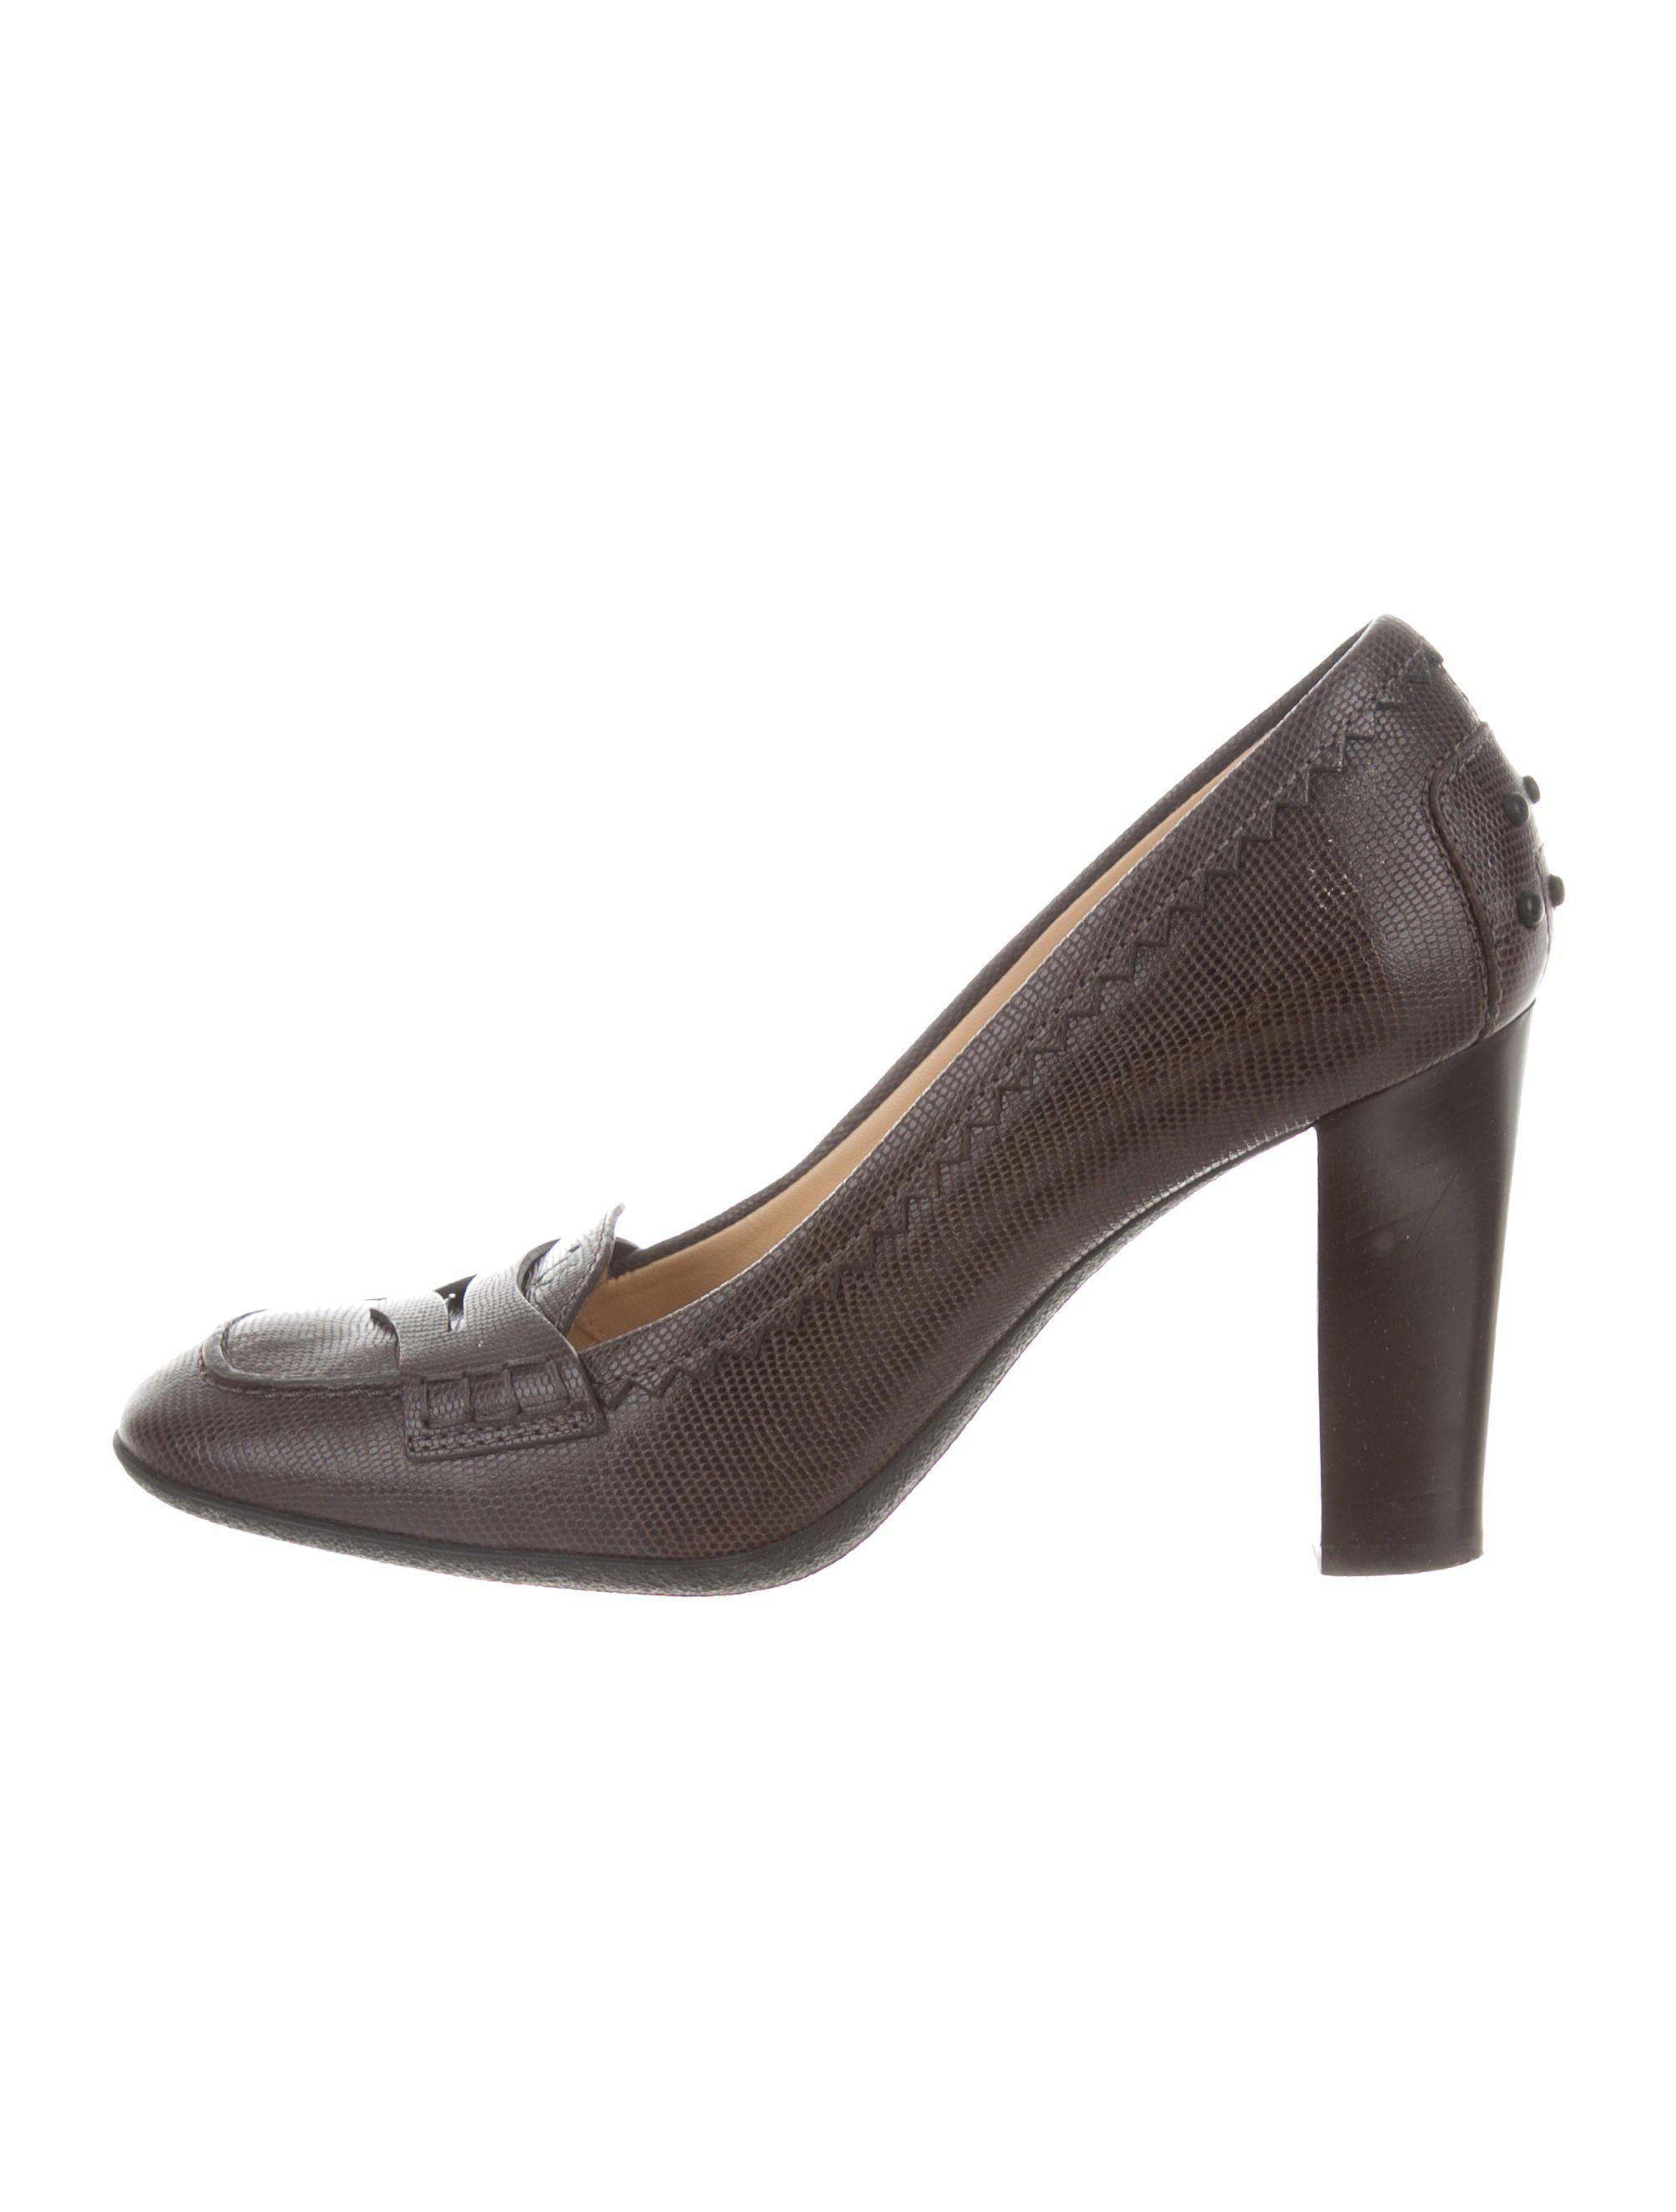 Tod's Jodie Embossed Pumps cheap sale view U2A3zY5L